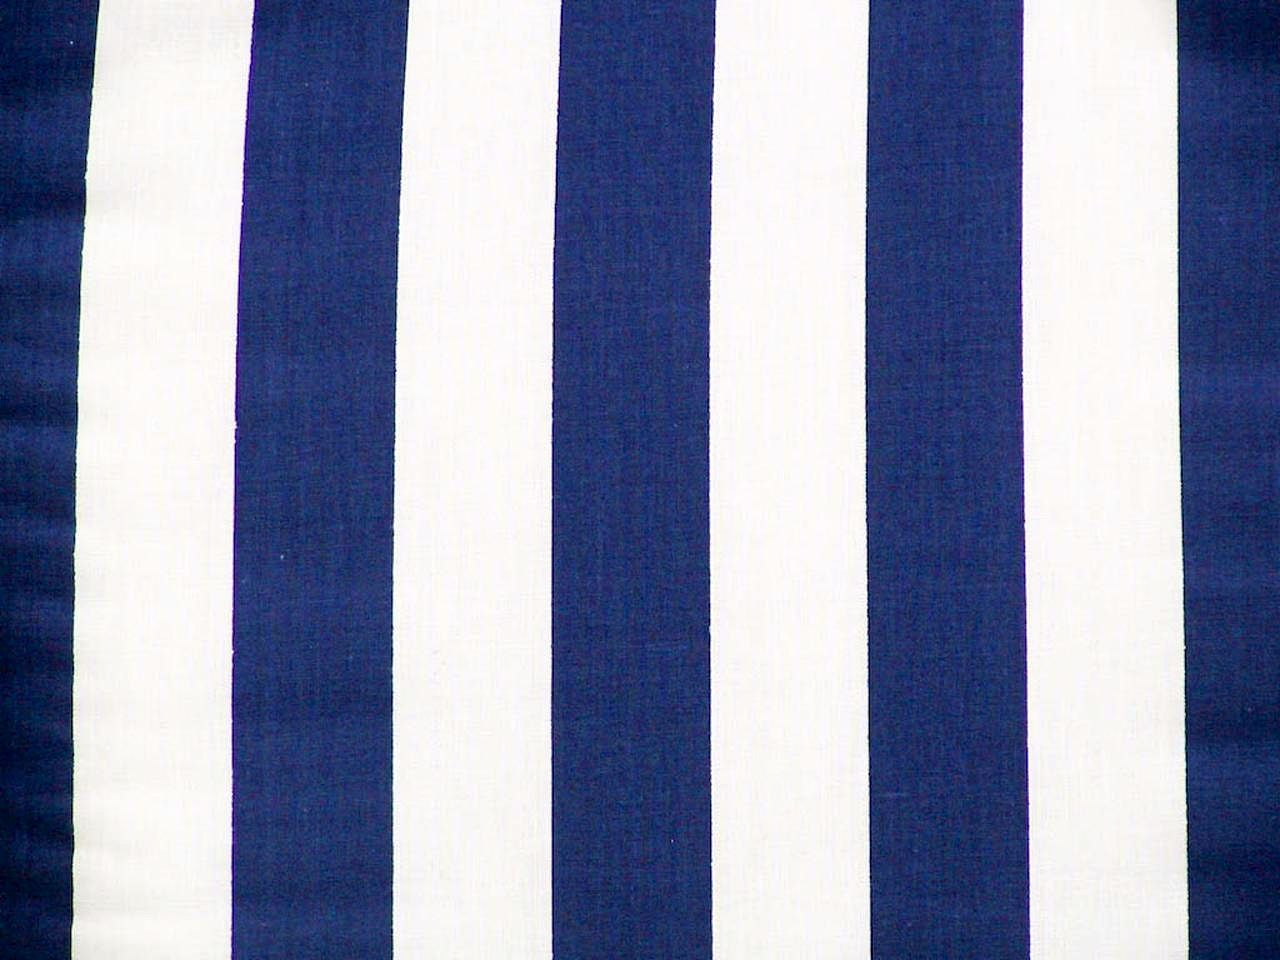 File:Background blue ad white strips.jpg - File:Background Blue Ad White Strips.jpg - Wikimedia Commons